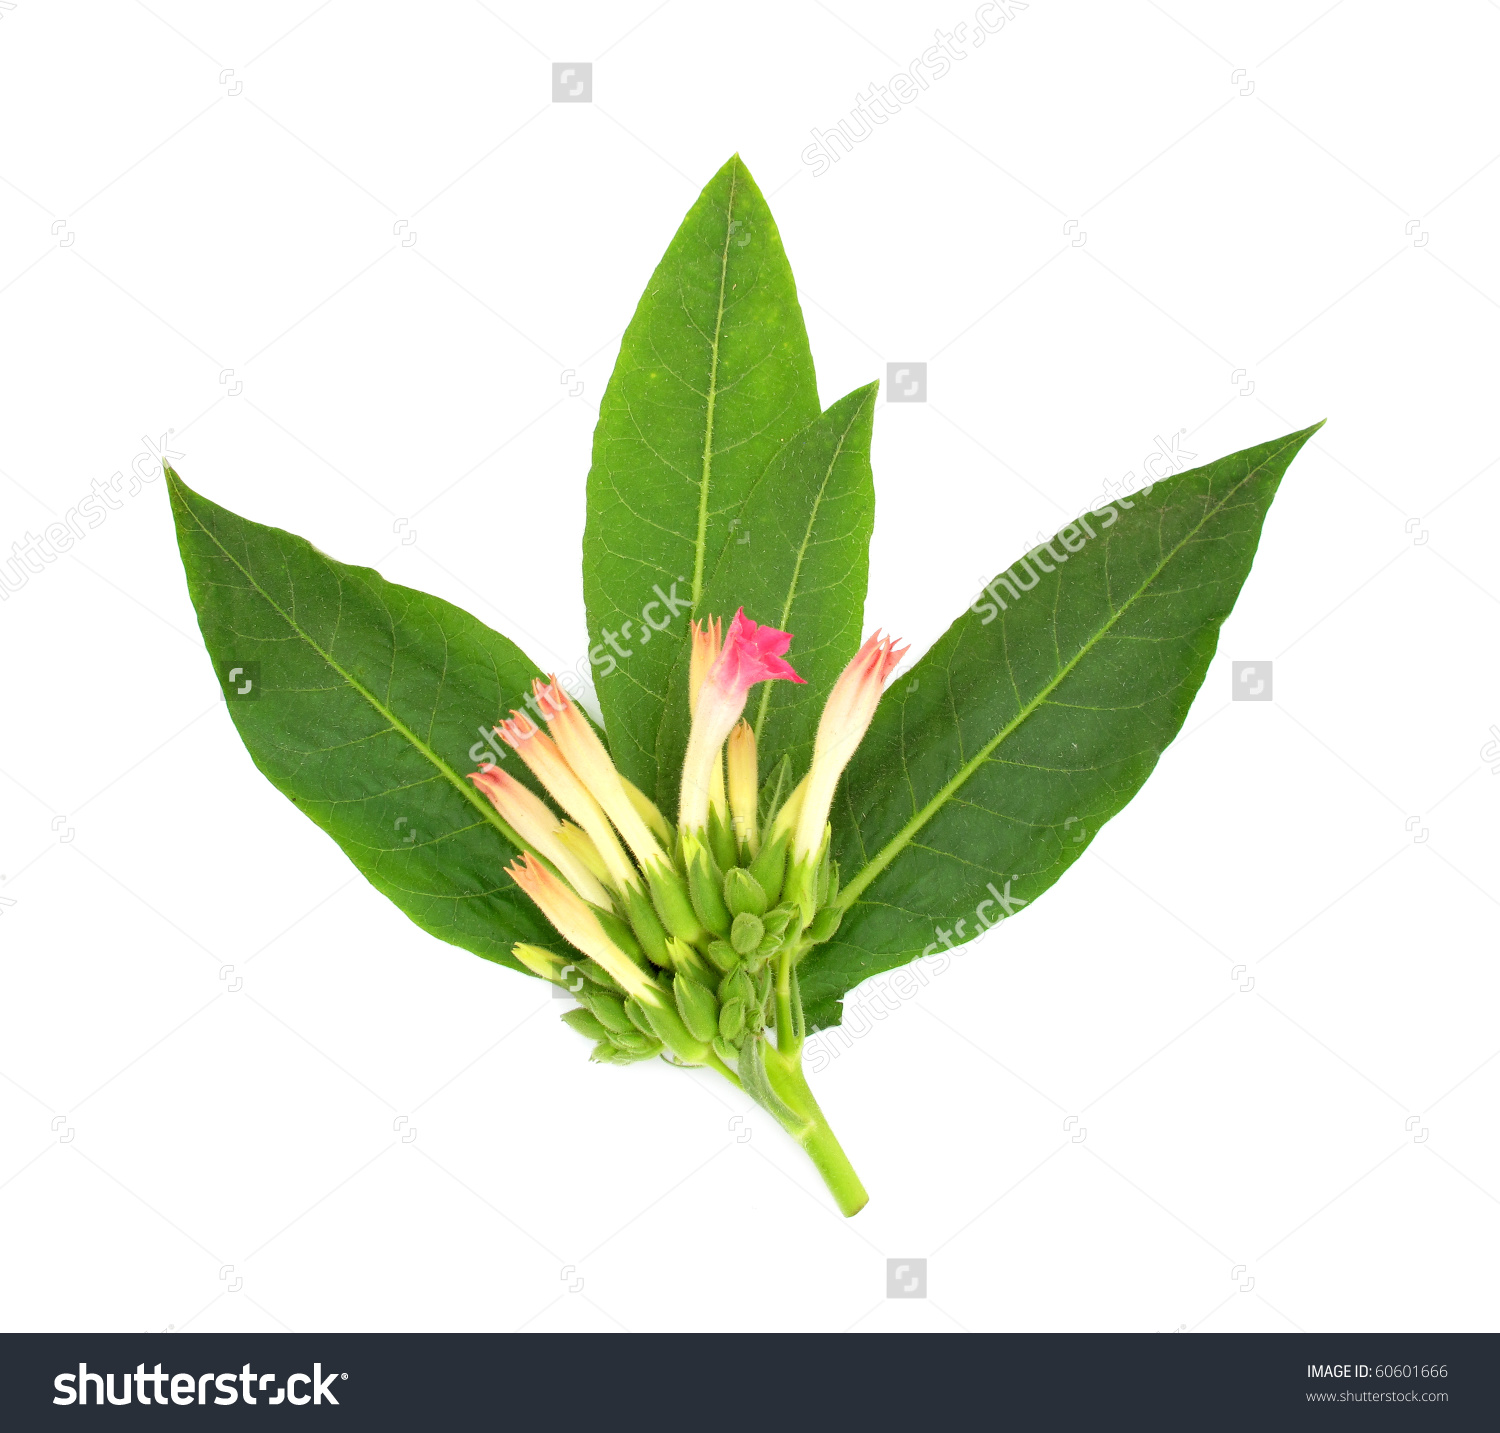 Tobacco Plant Flower Leaves Buds Stock Photo 60601666.